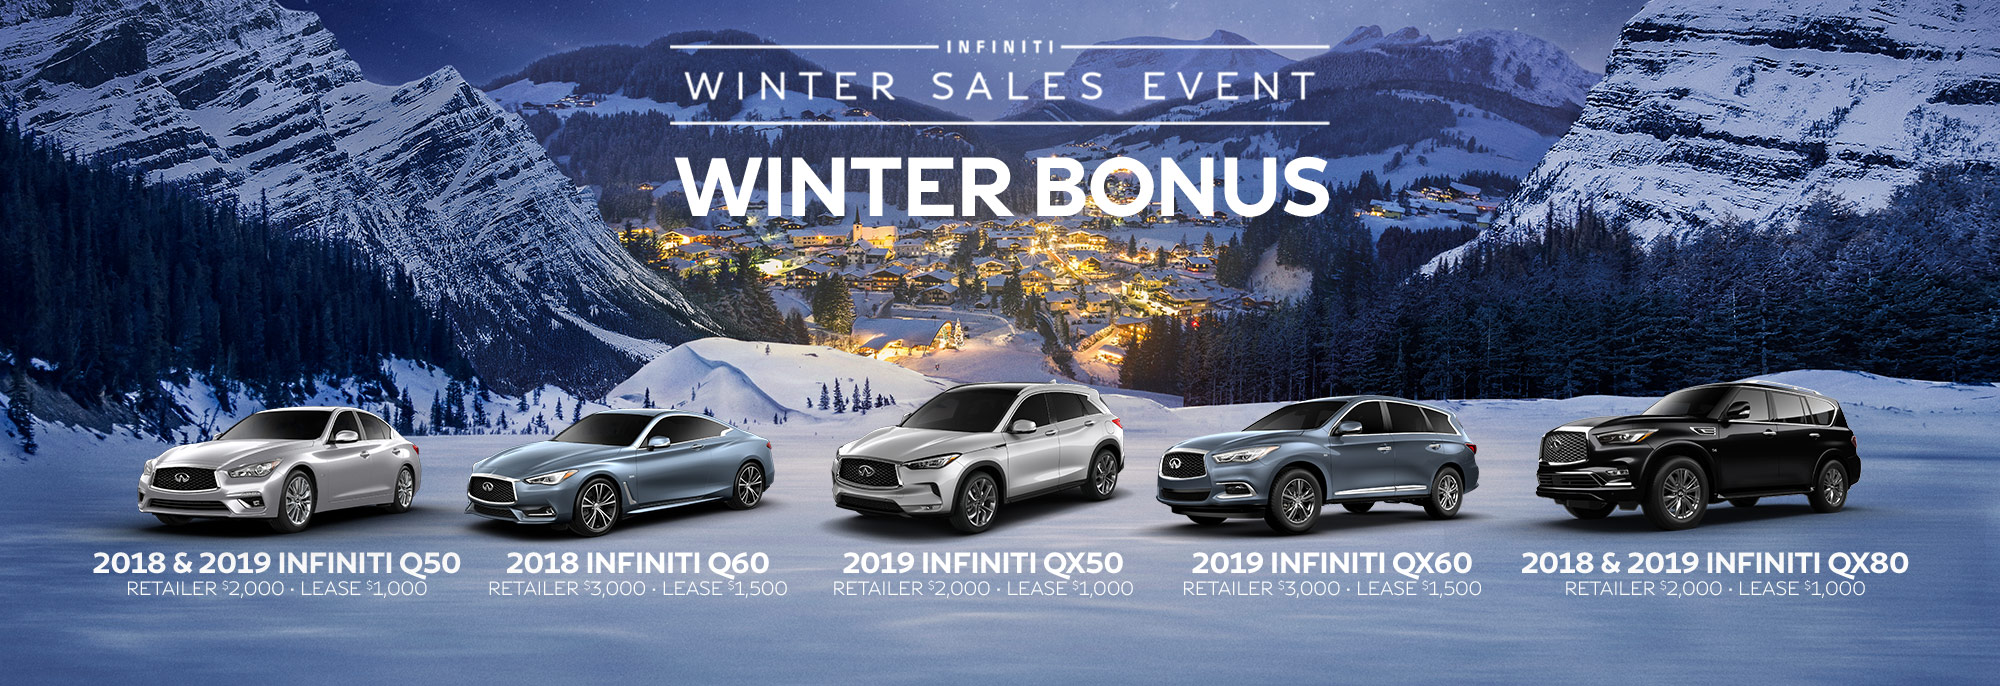 Winter Bonus